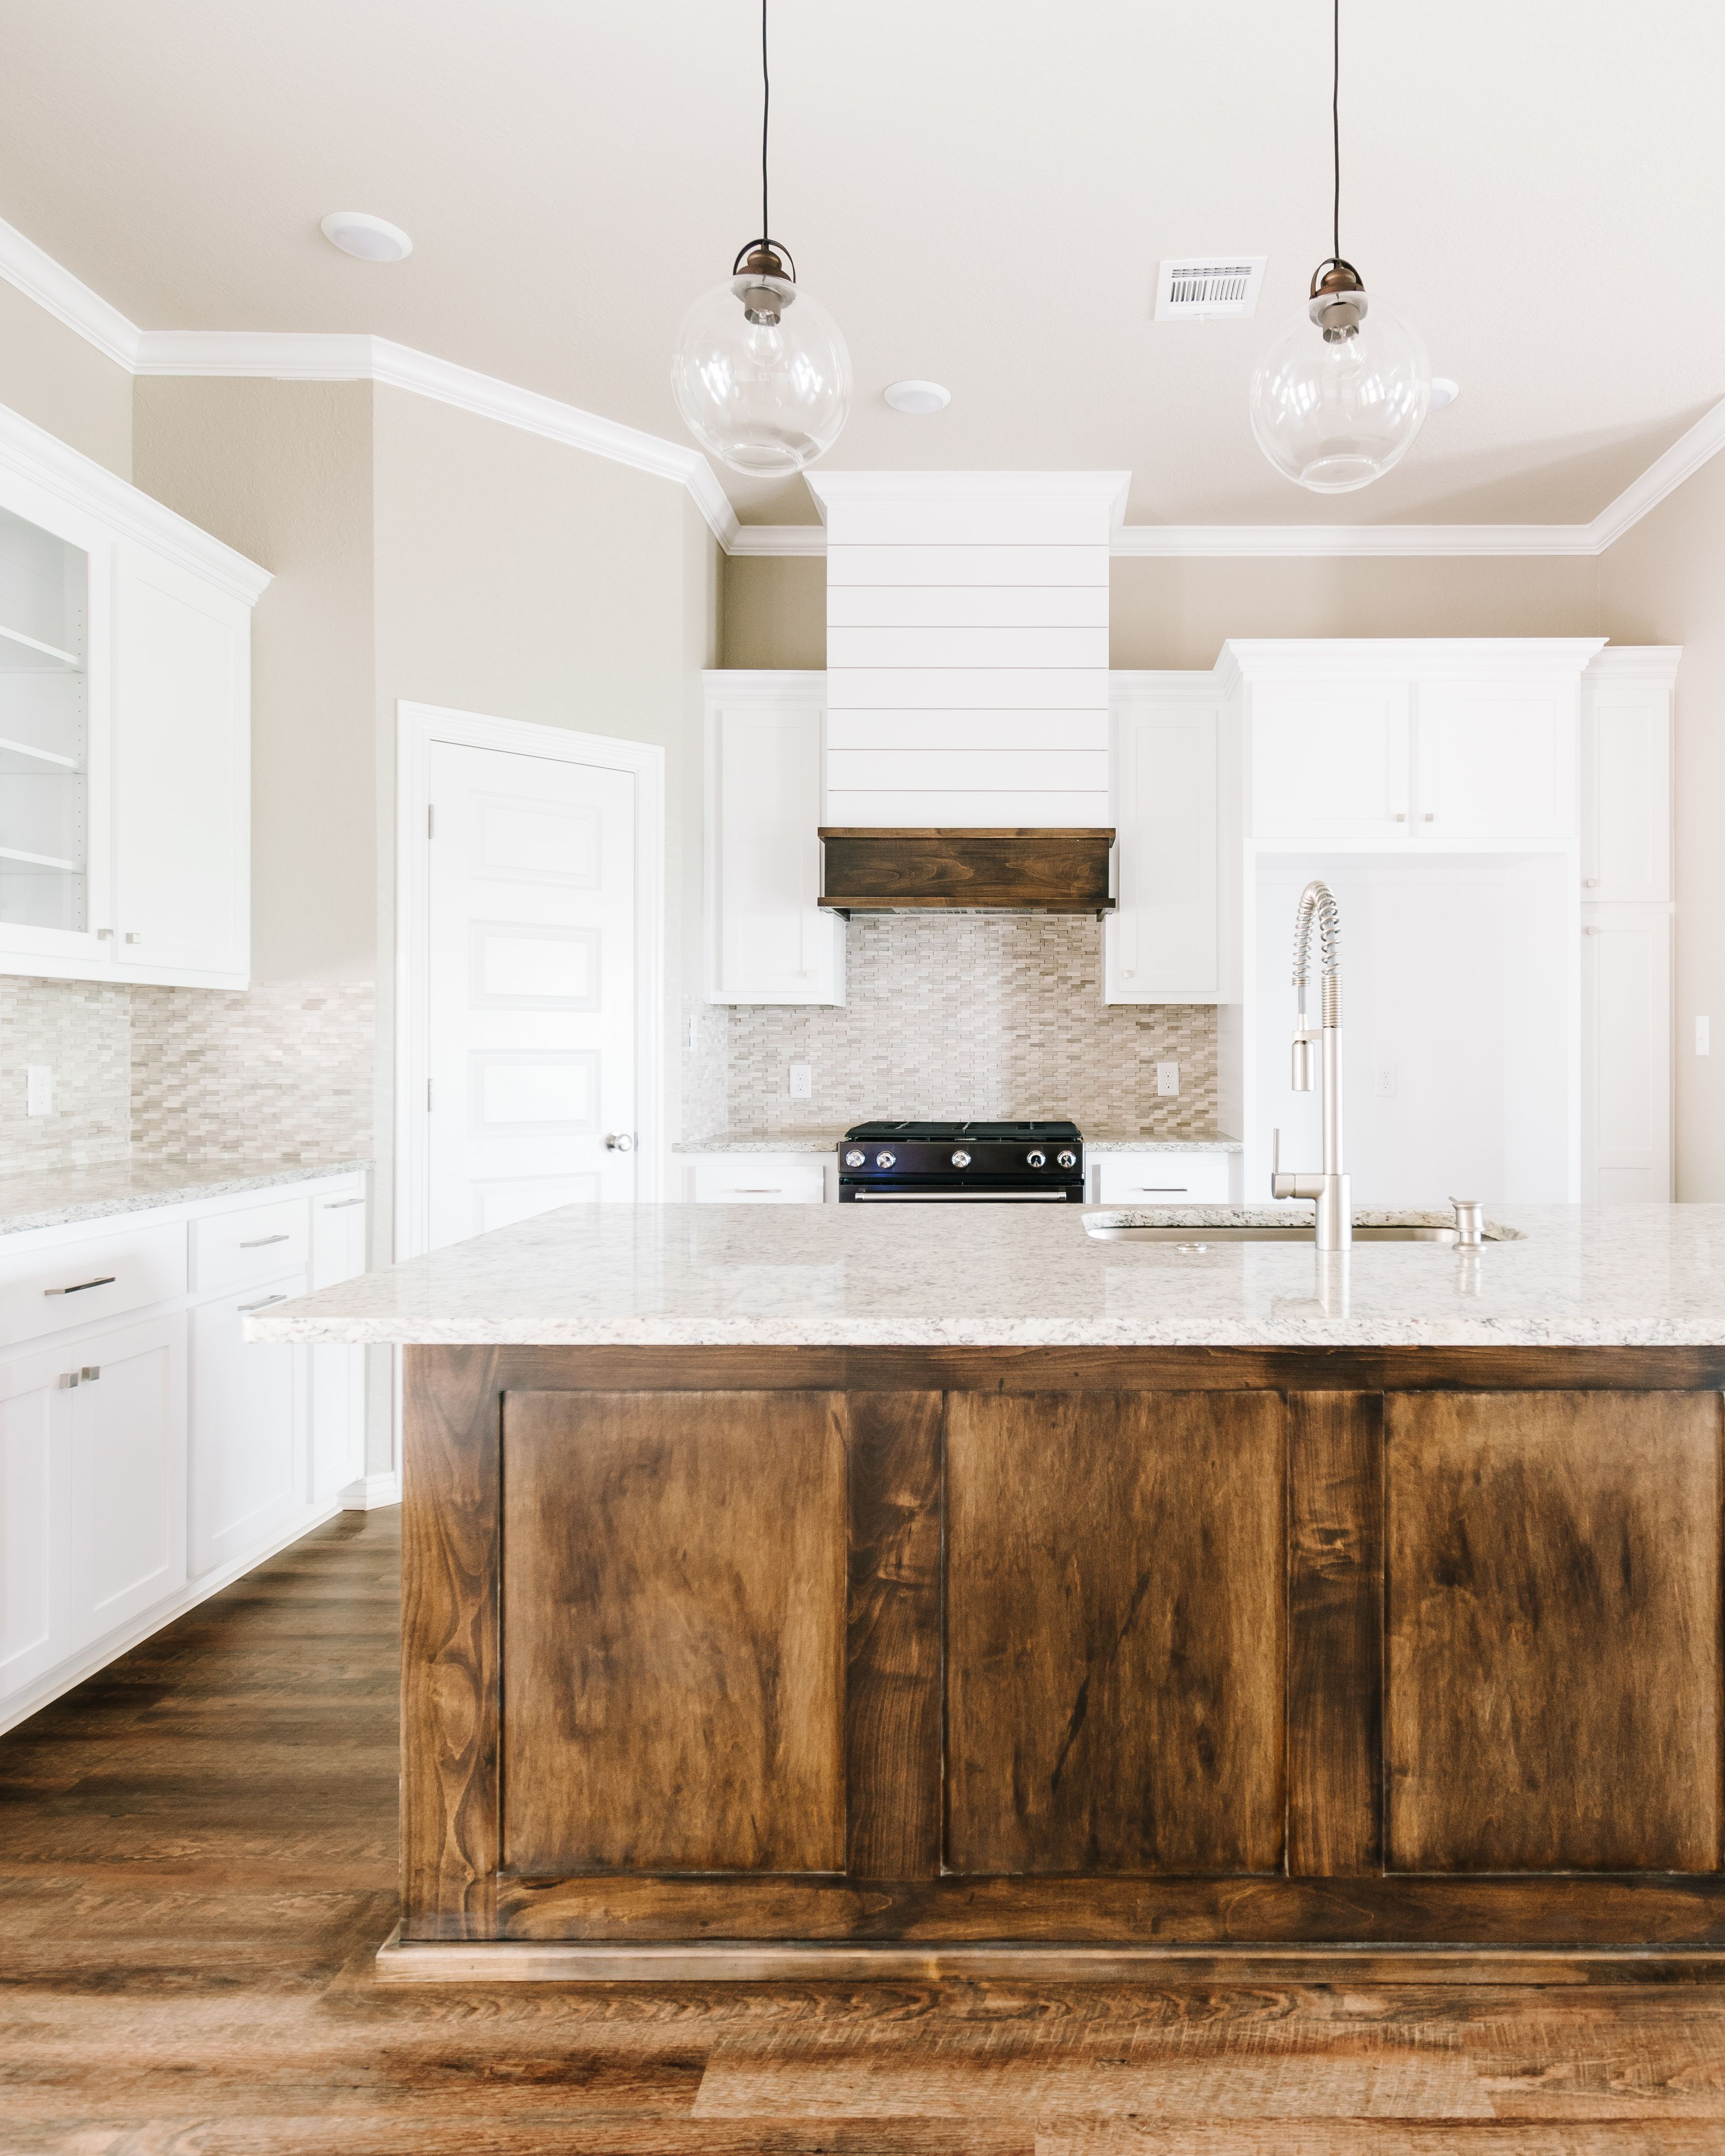 Modern White Rustic Kitchen With Dark Stained Island And Custom Shiplap Hood In 2020 Rustic Hardwood Floors Shiplap Kitchen Rustic Hardwood